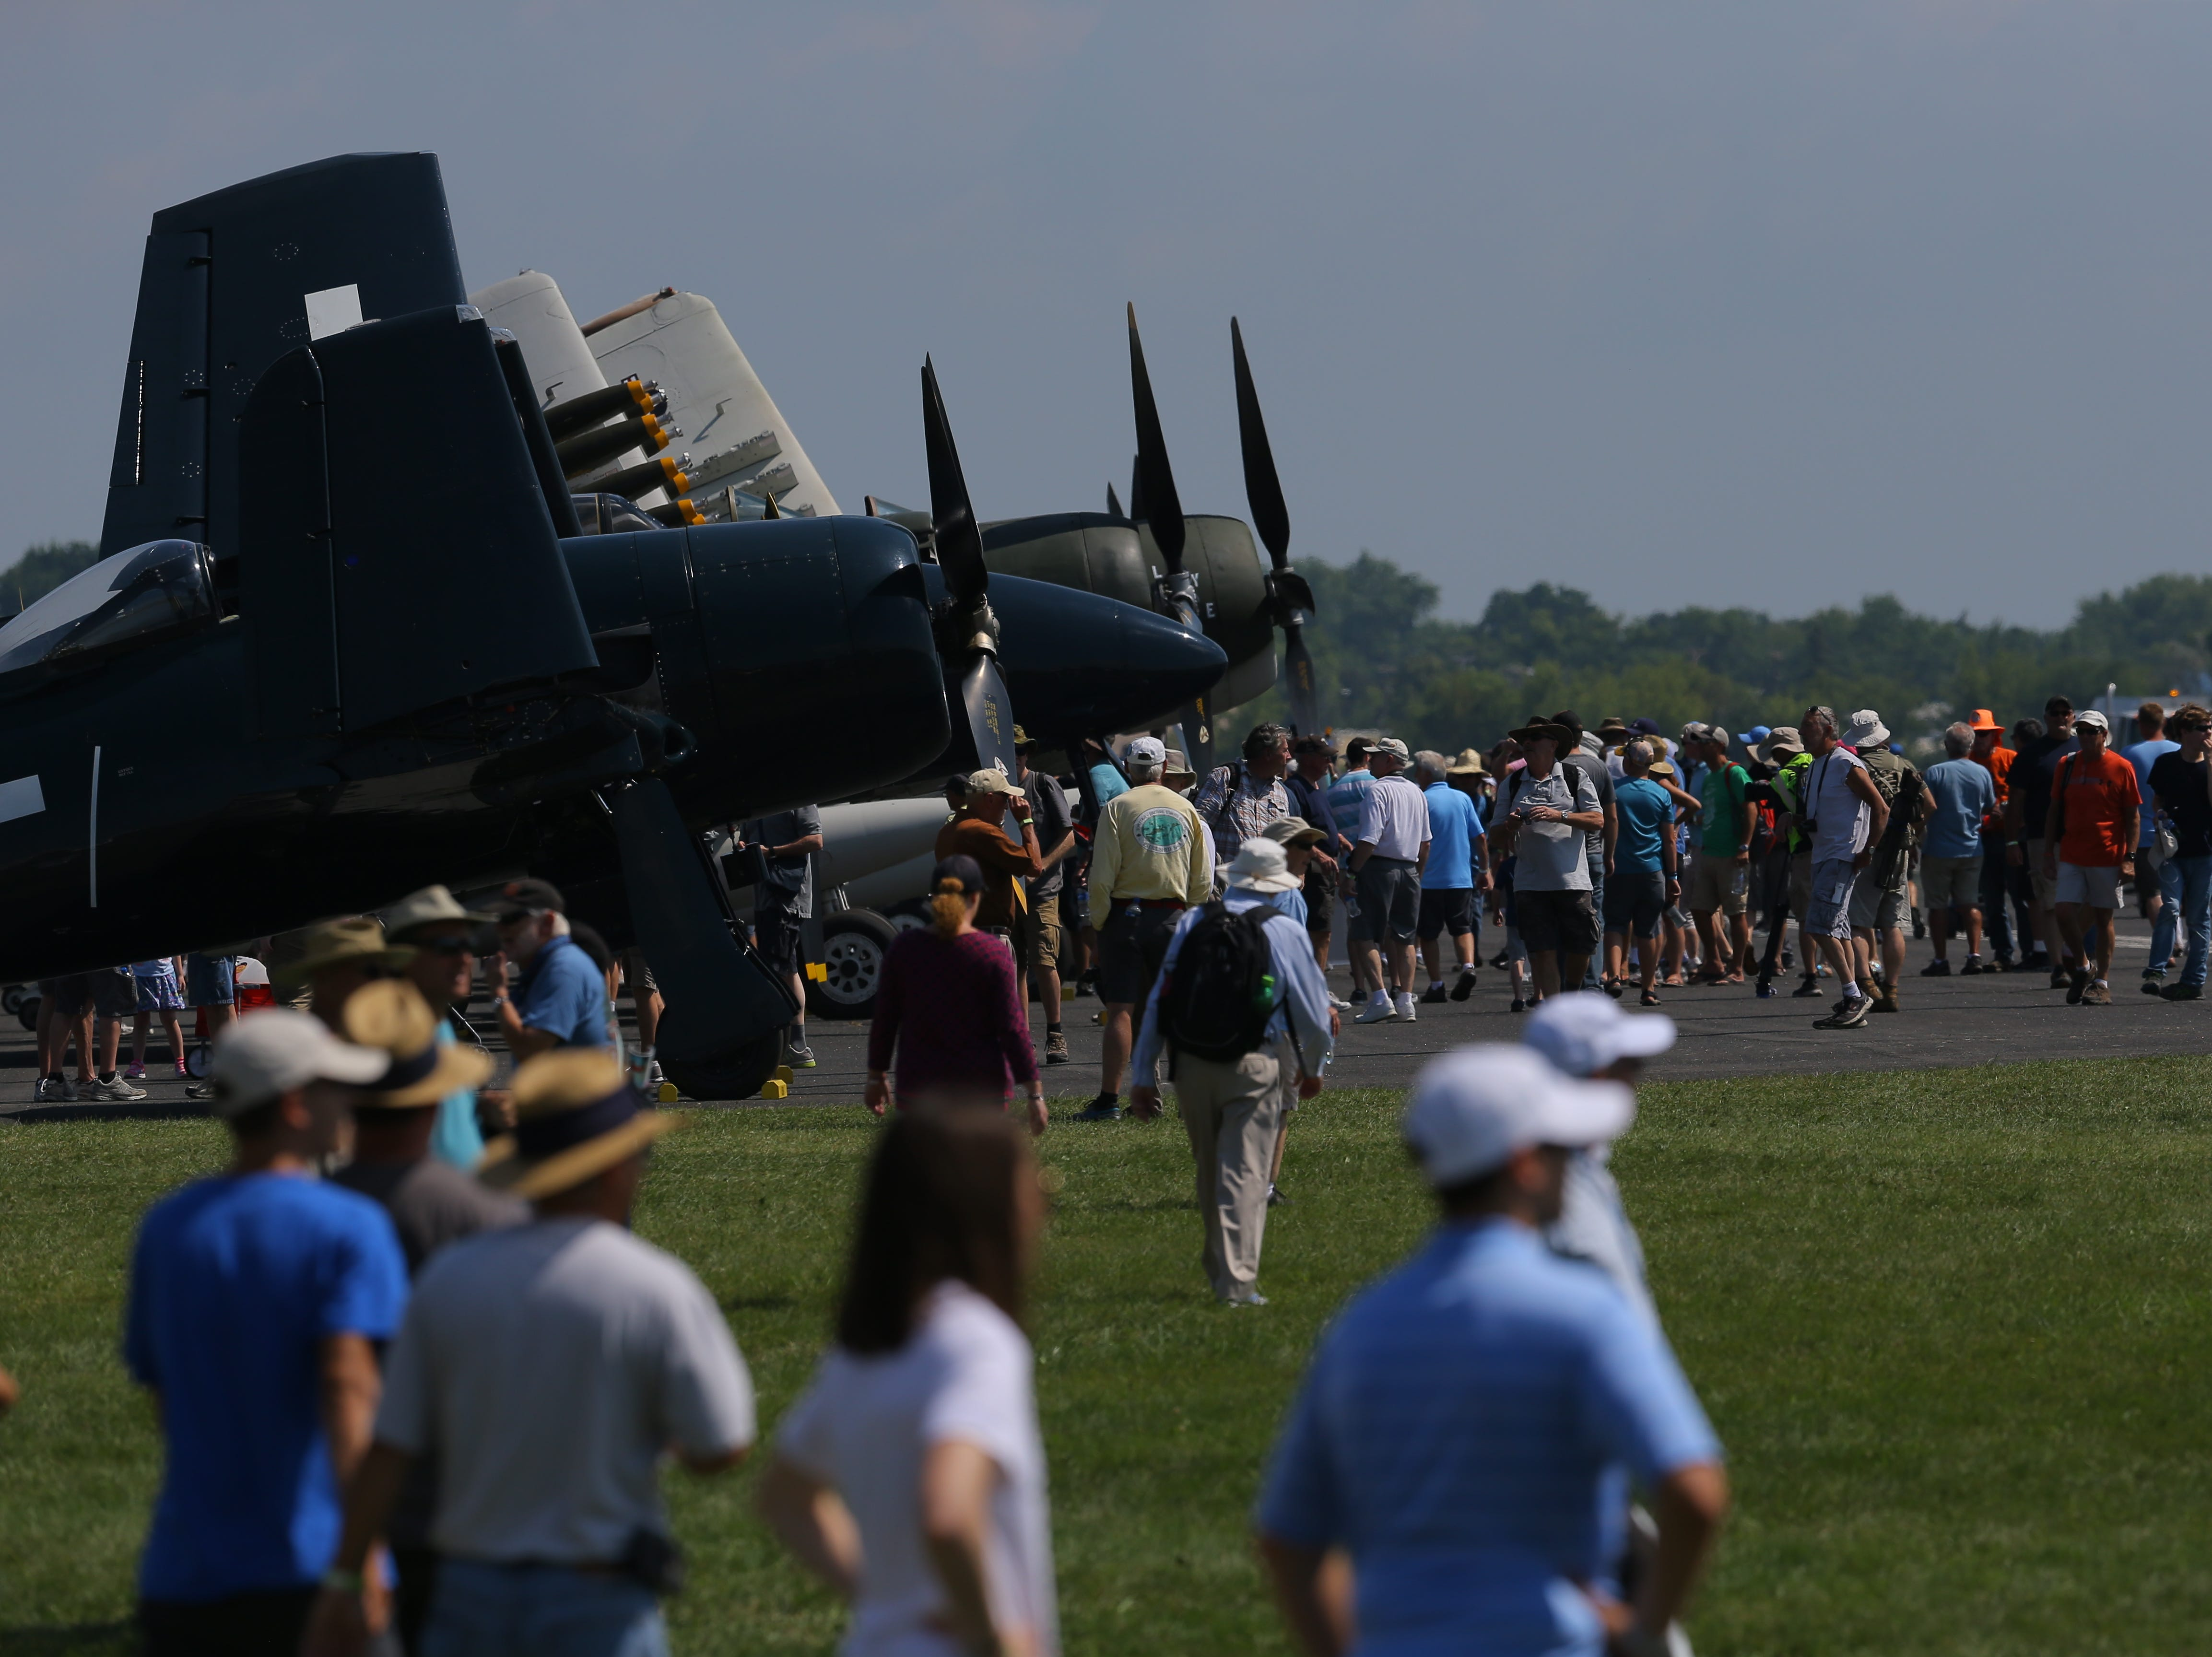 Warbirds were popular for people to look at Tuesday, July 24, 2018, in Oshkosh, Wis.  The 66th annual Experimental Aircraft Association Fly-In Convention, AirVenture 2018 draws over 500,000 people annually to the area.  The convention runs through July 29. Joe Sienkiewicz/USA Today NETWORK-Wisconsin